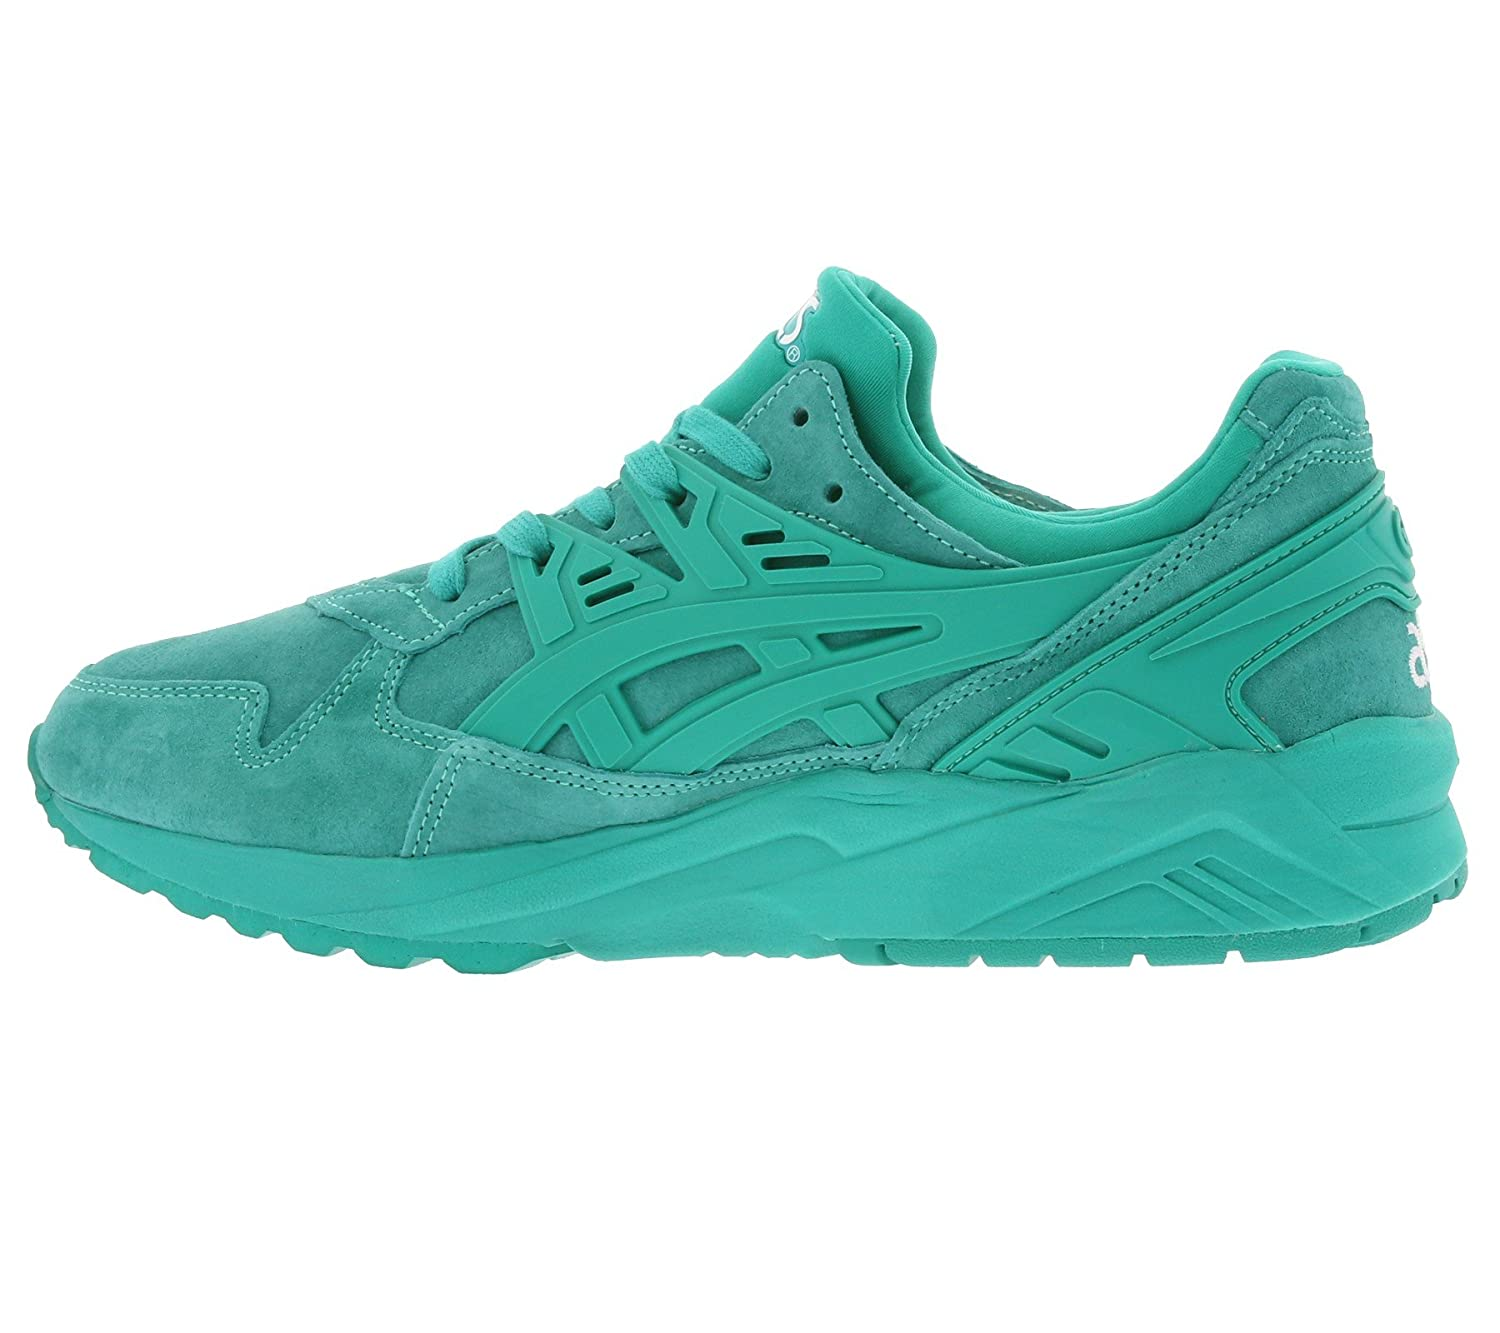 315081016430 Asics - Asics Gel Kayano Trainer Spectra Mint  Amazon.co.uk  Shoes   Bags